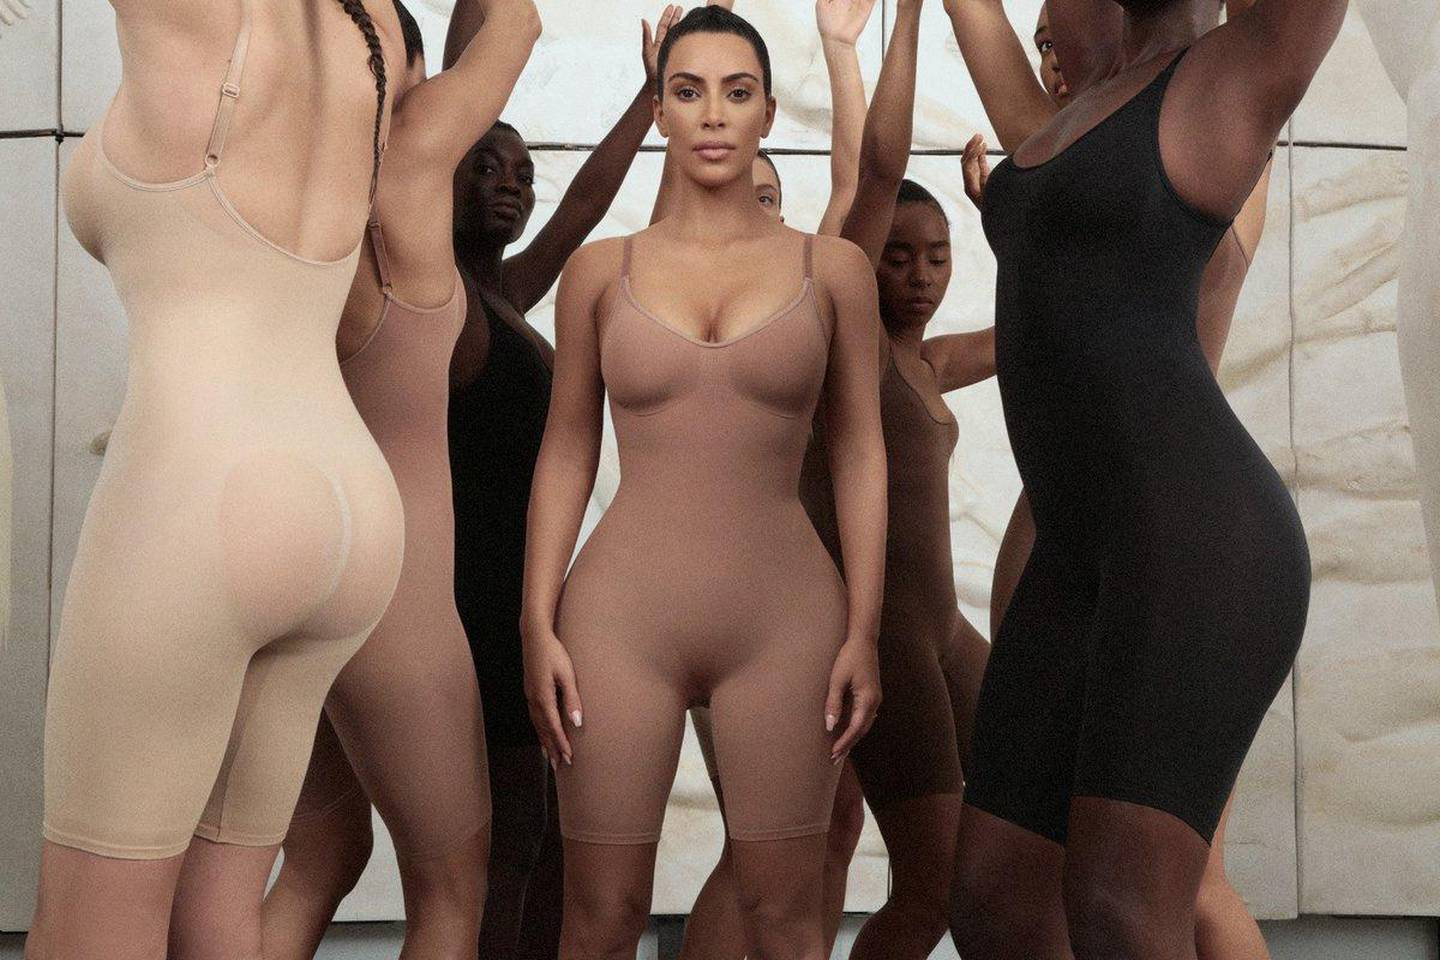 An undated image obtained on social media on June 27, 2019 shows models including Kim Kardashian dressed in bodysuits from her new clothing line called Kimono in an undisclosed location. Vanessa Beecroft via REUTERS  THIS IMAGE HAS BEEN SUPPLIED BY A THIRD PARTY. NO RESALES. NO ARCHIVES. MANDATORY CREDIT